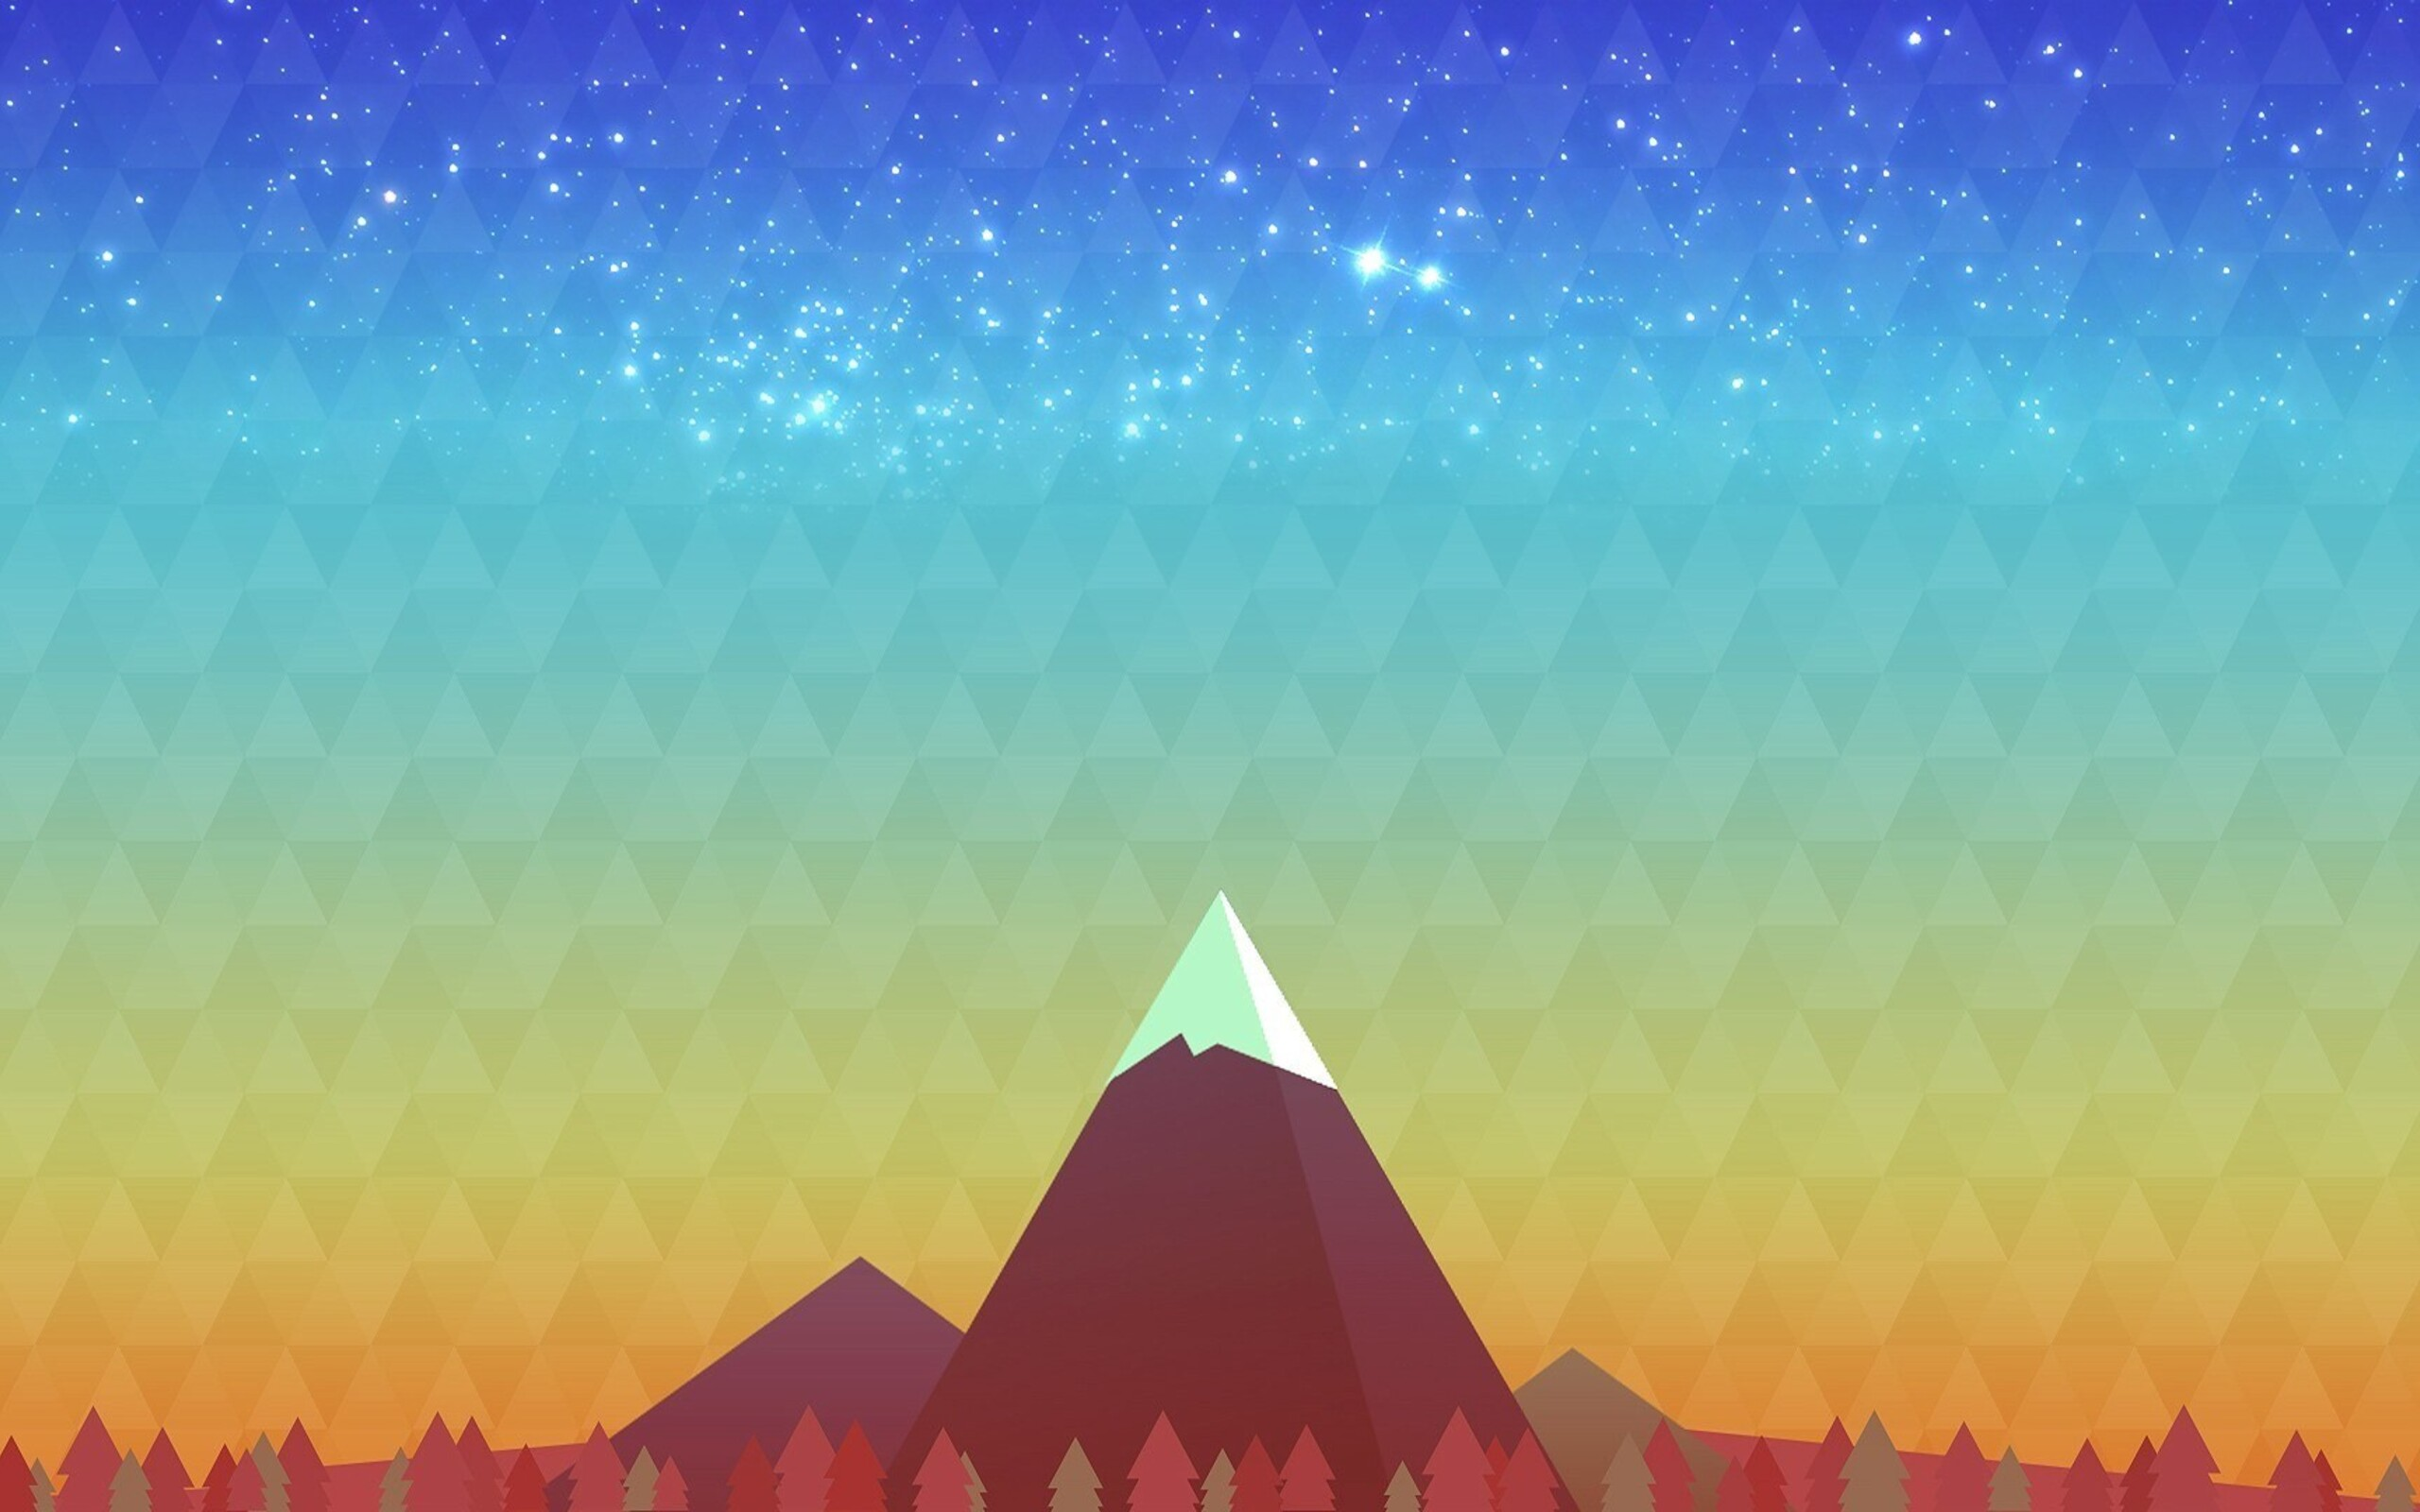 digital-art-mountains.jpg